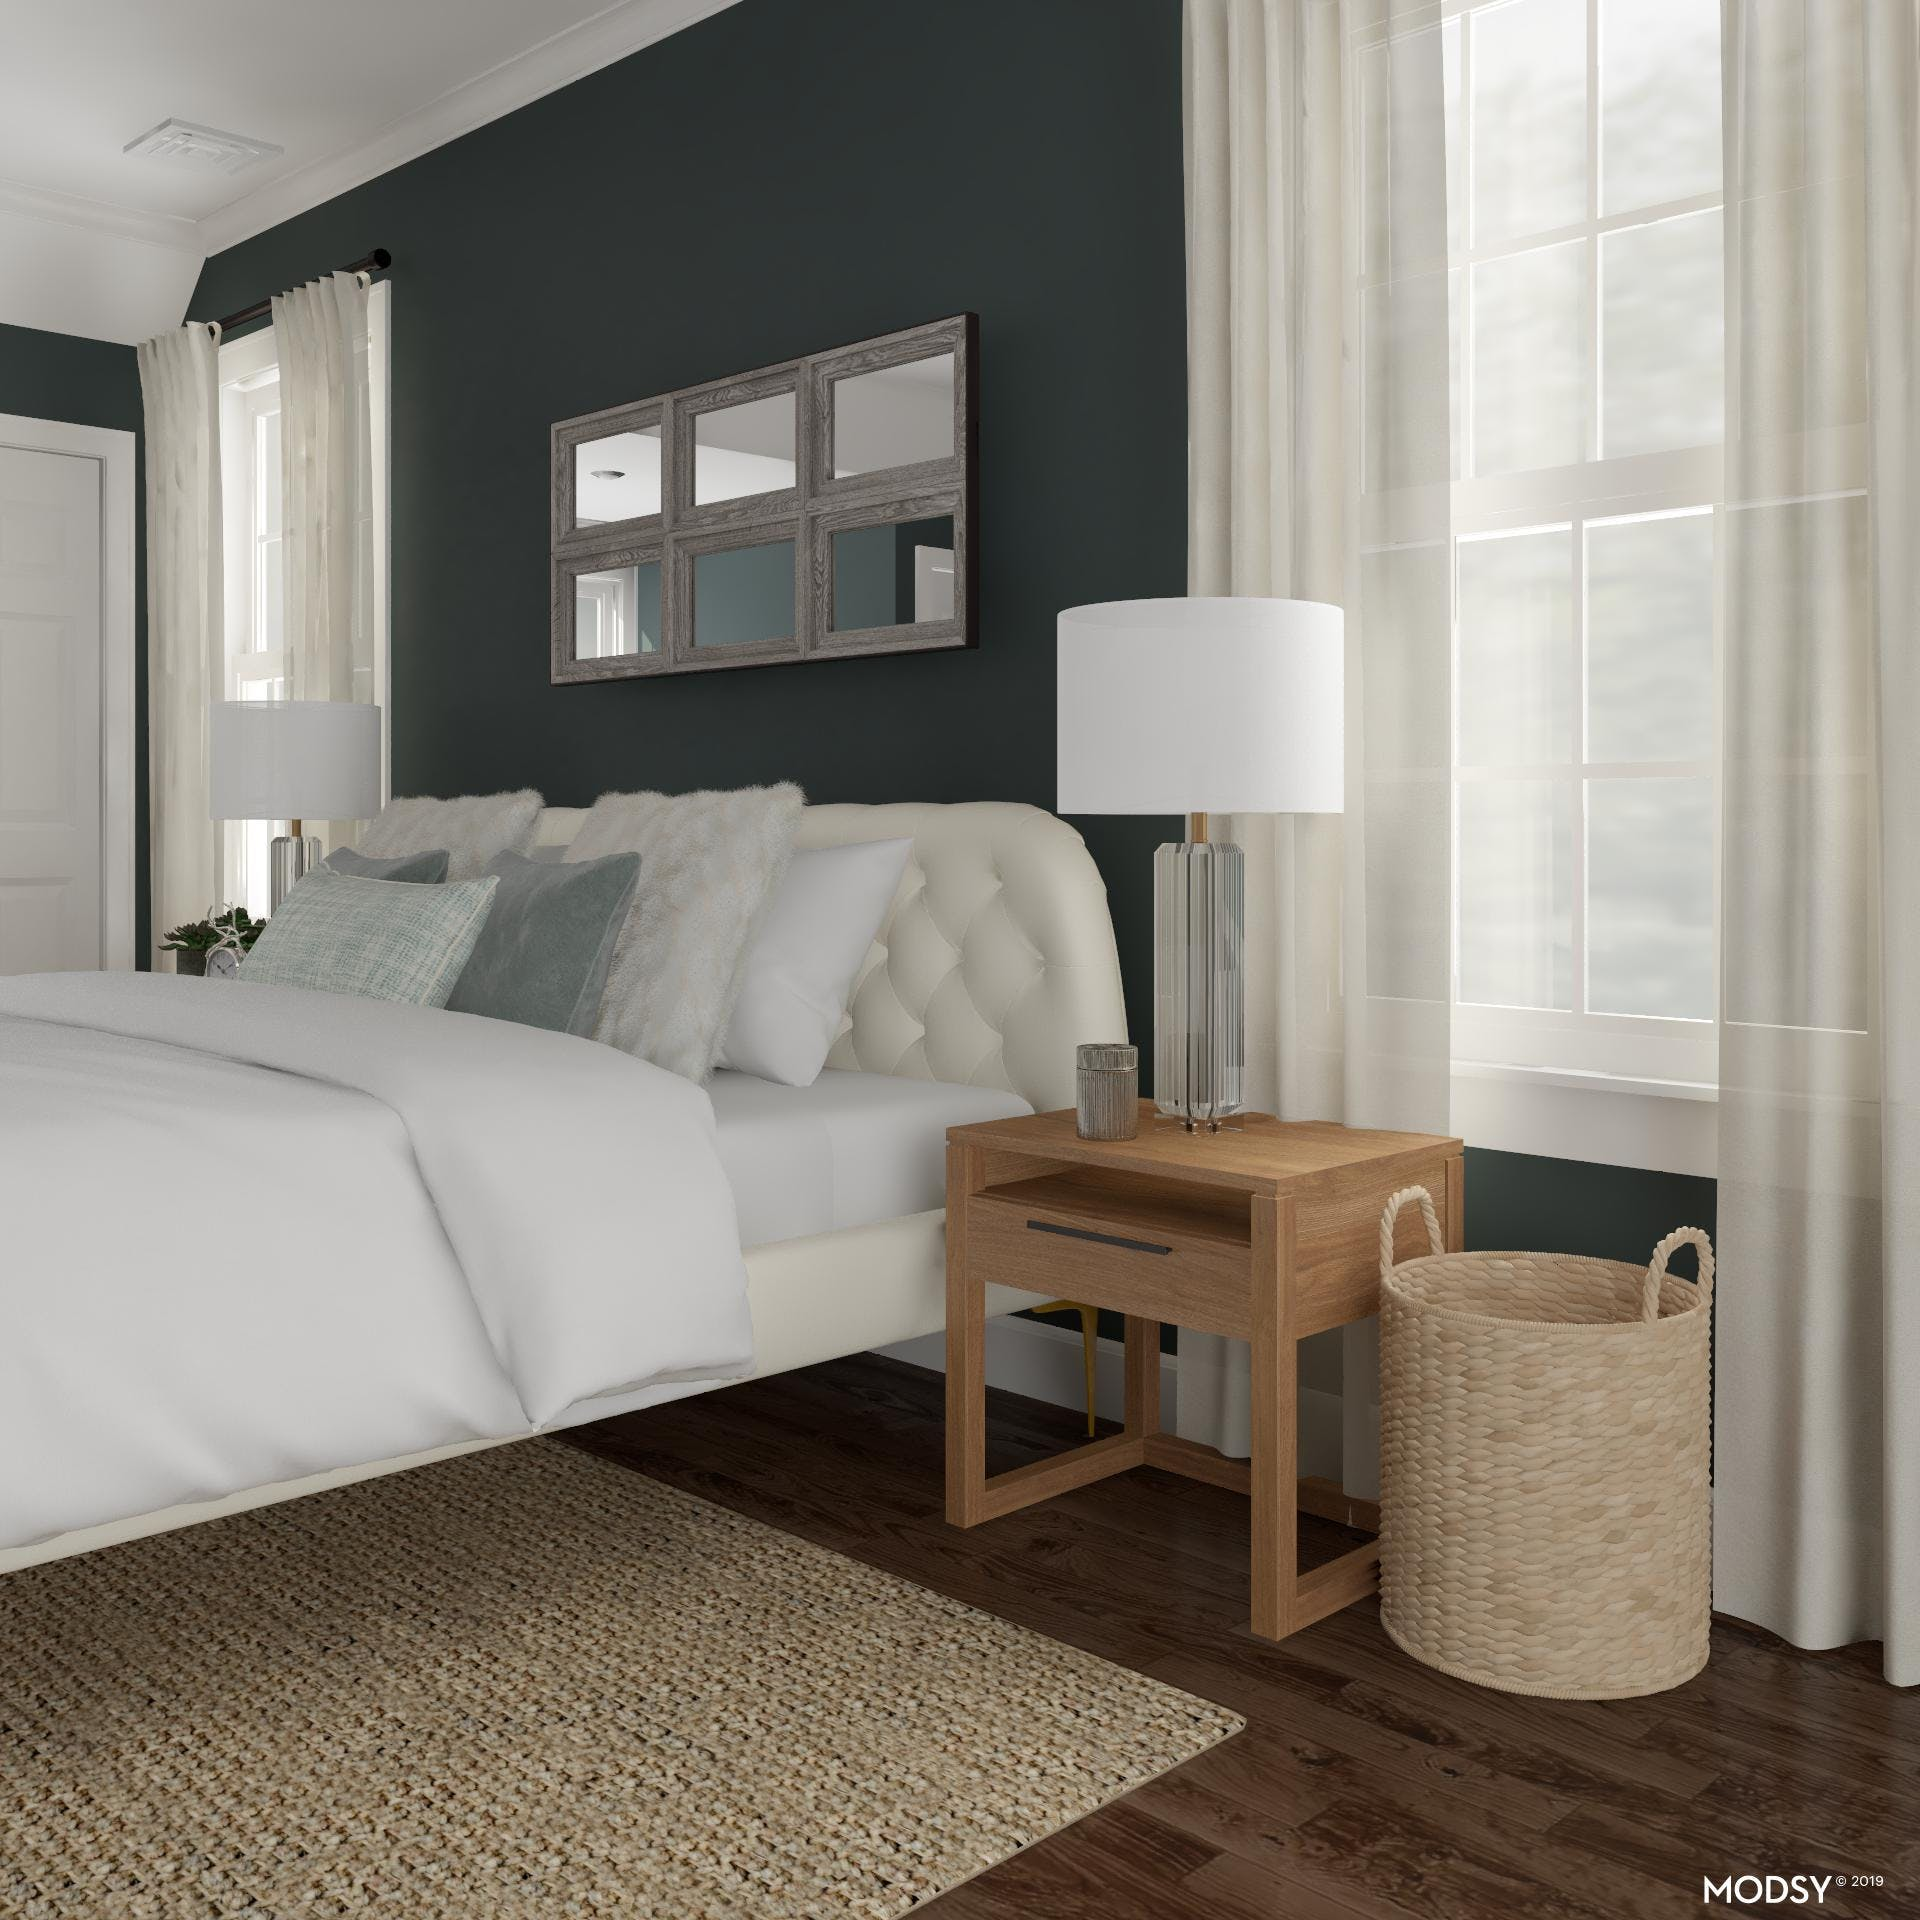 How to Make Your Master Bedroom Feel Bigger